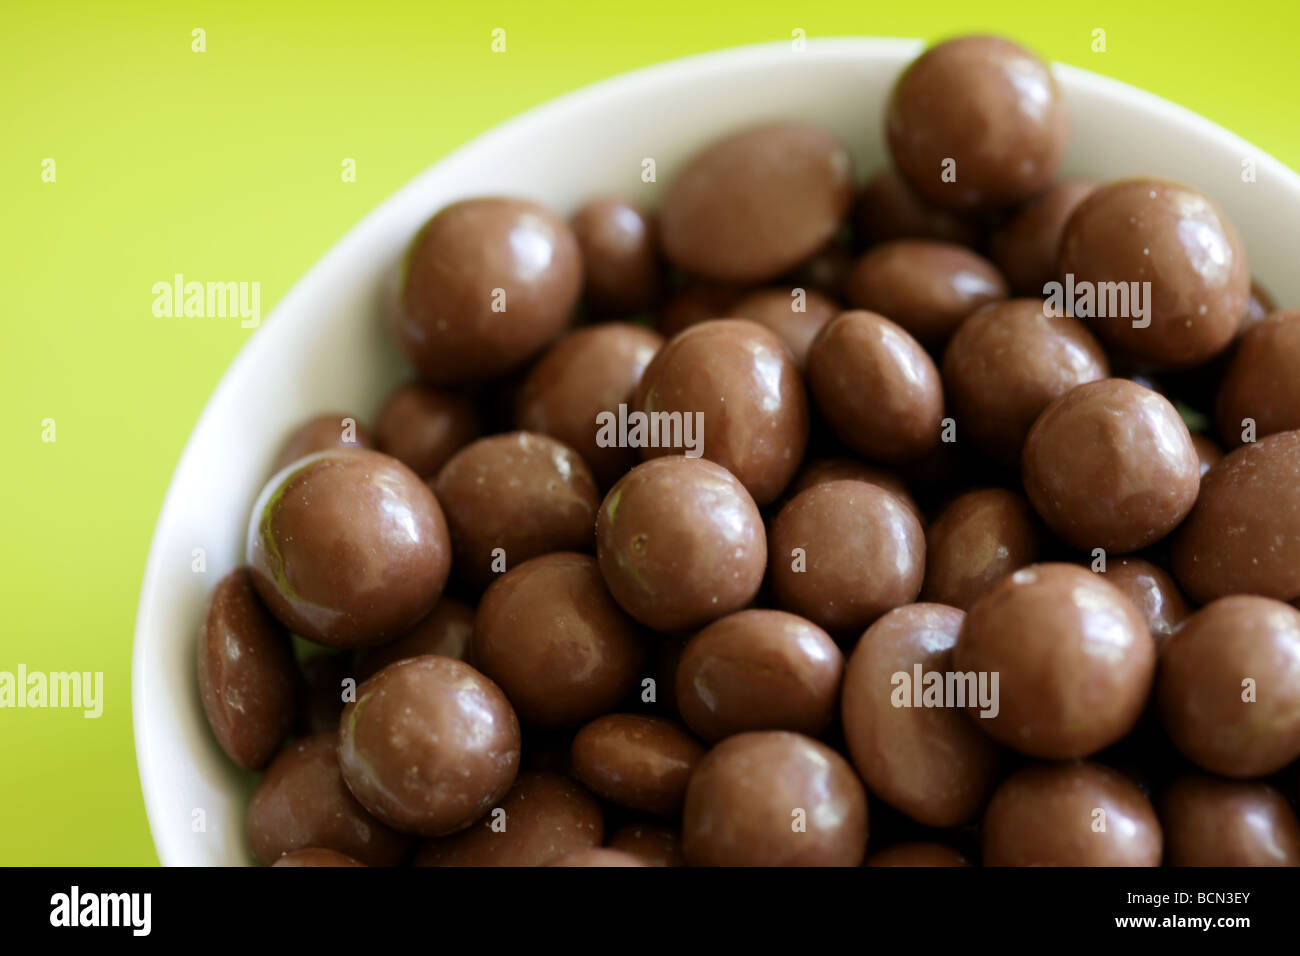 Bowl of Revels - Stock Image